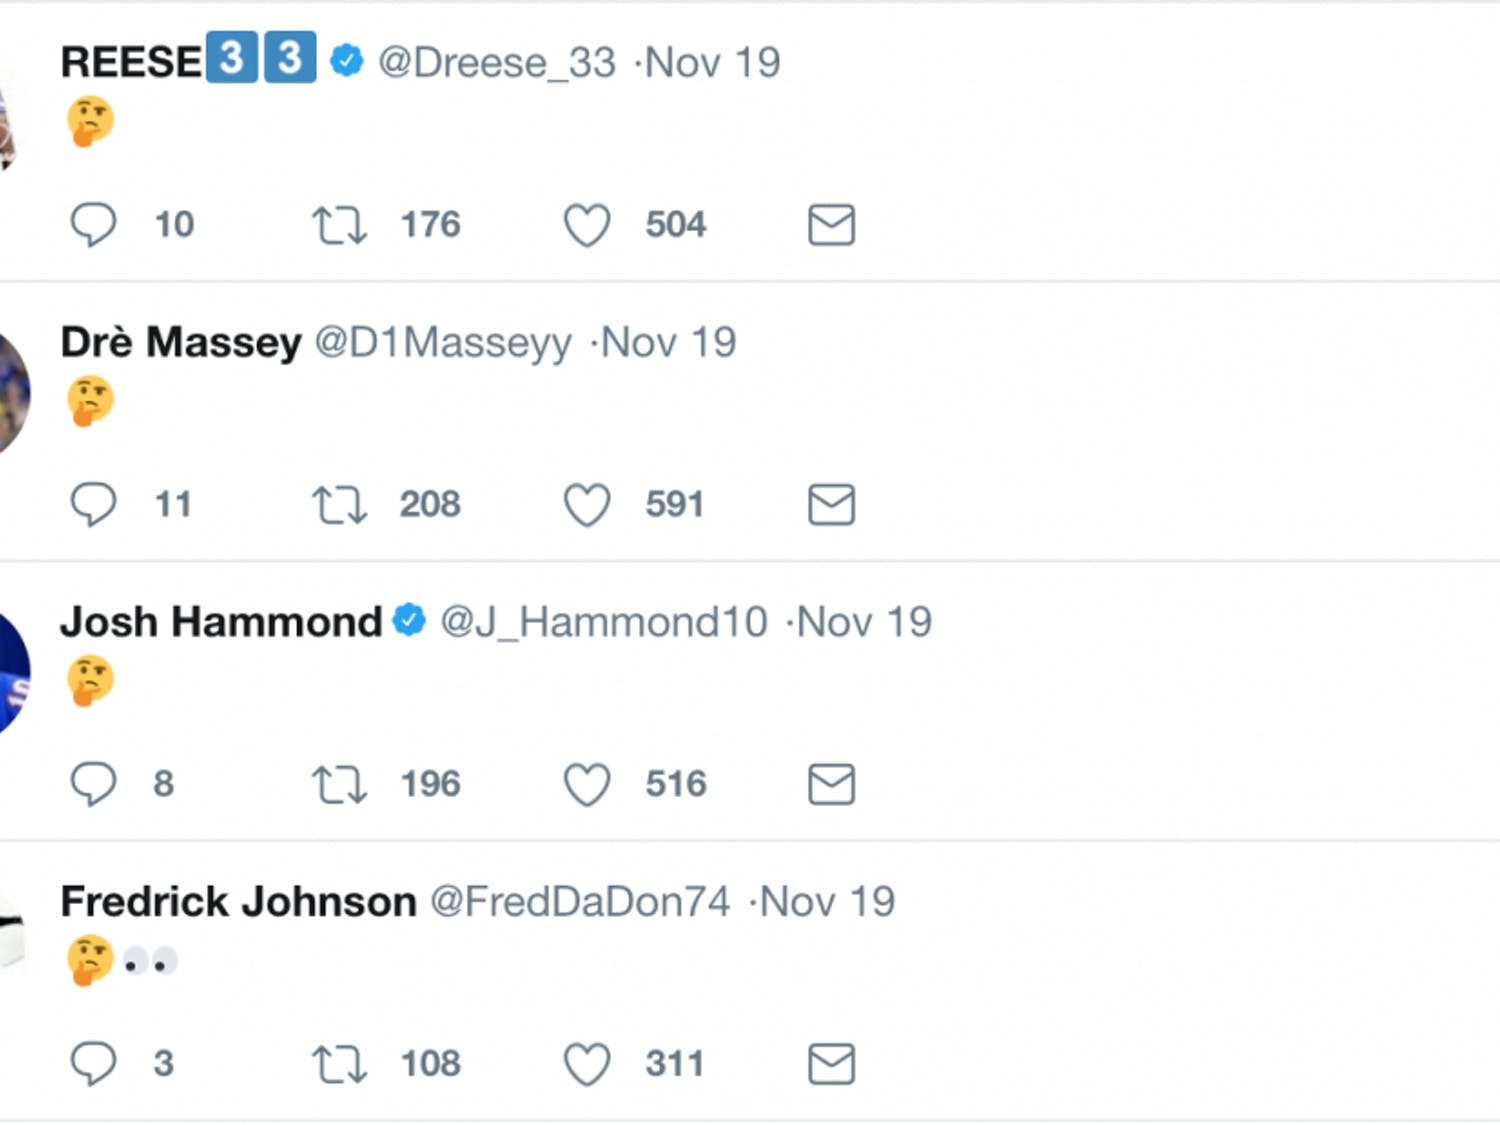 Over the course of a little bit more than an hour on Sunday night, over 30 members of UF's football team posted a barrage of cryptic, mysterious tweets featuring only the thinking face emoji.